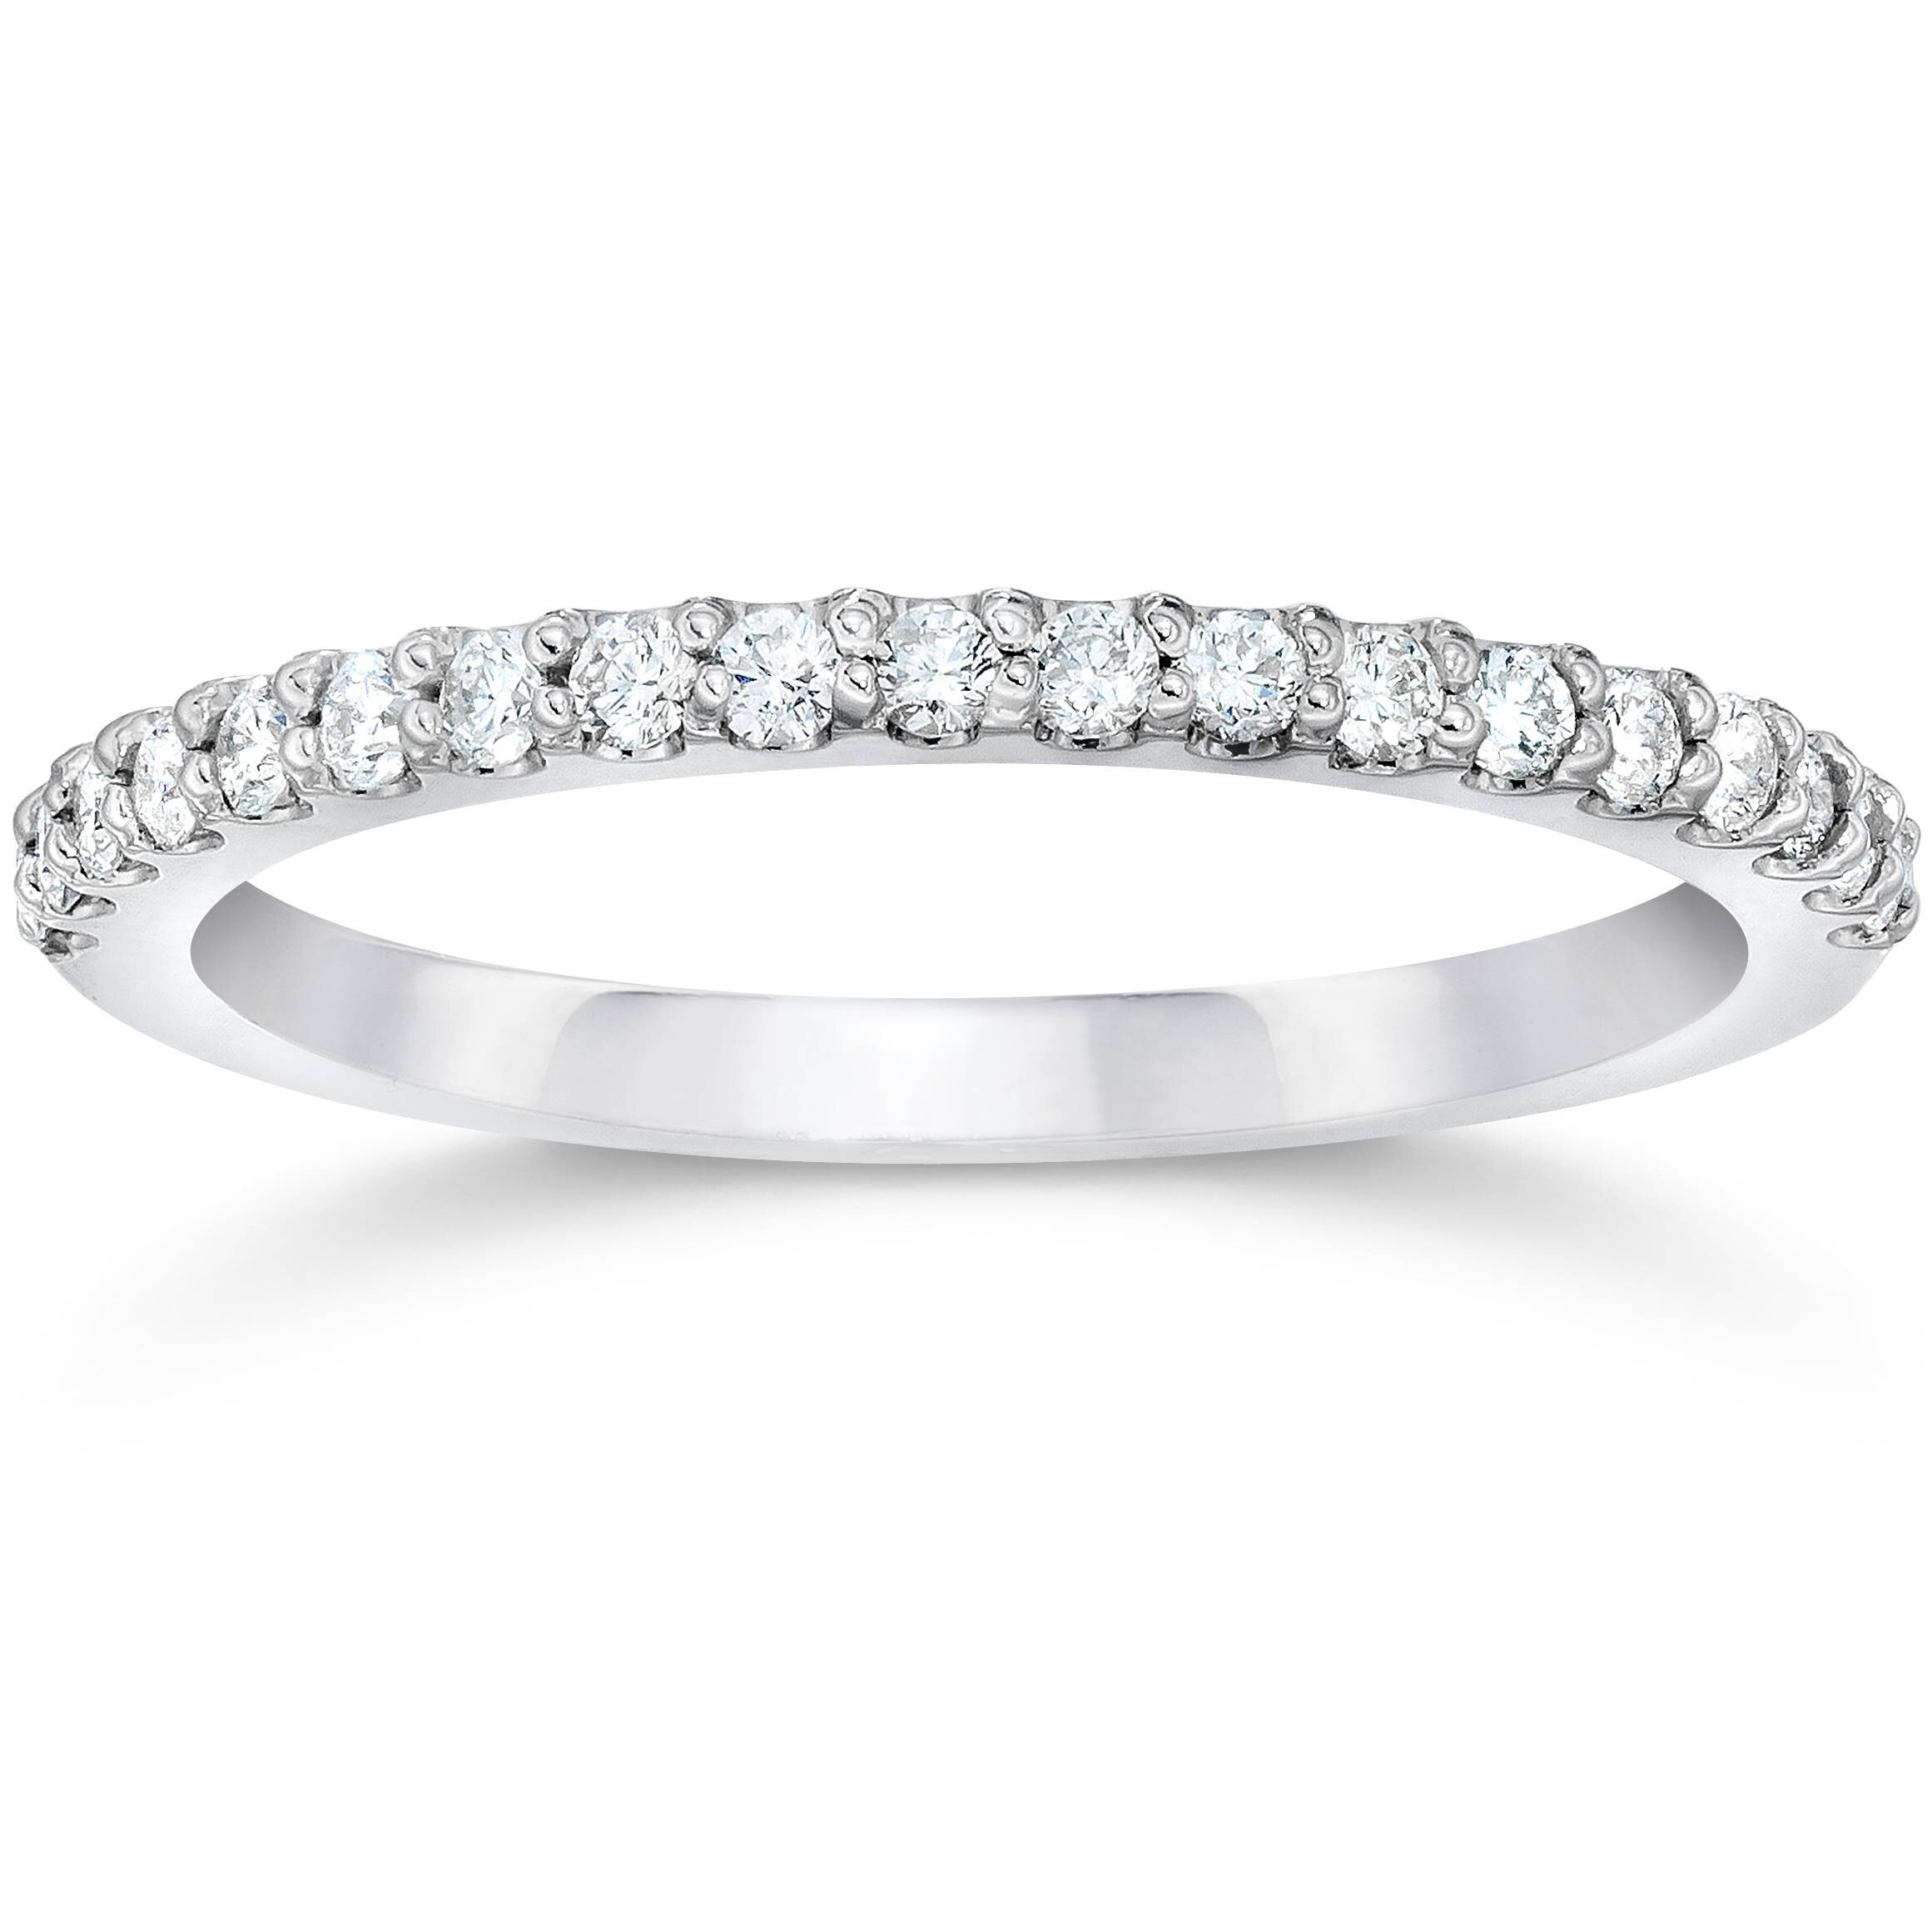 1/8ct 14k White Gold Diamond Engagement Band Wedding Stackable Prong Womens Ring Within Recent Diamond Multi Triangle Anniversary Rings In White Gold (View 17 of 25)